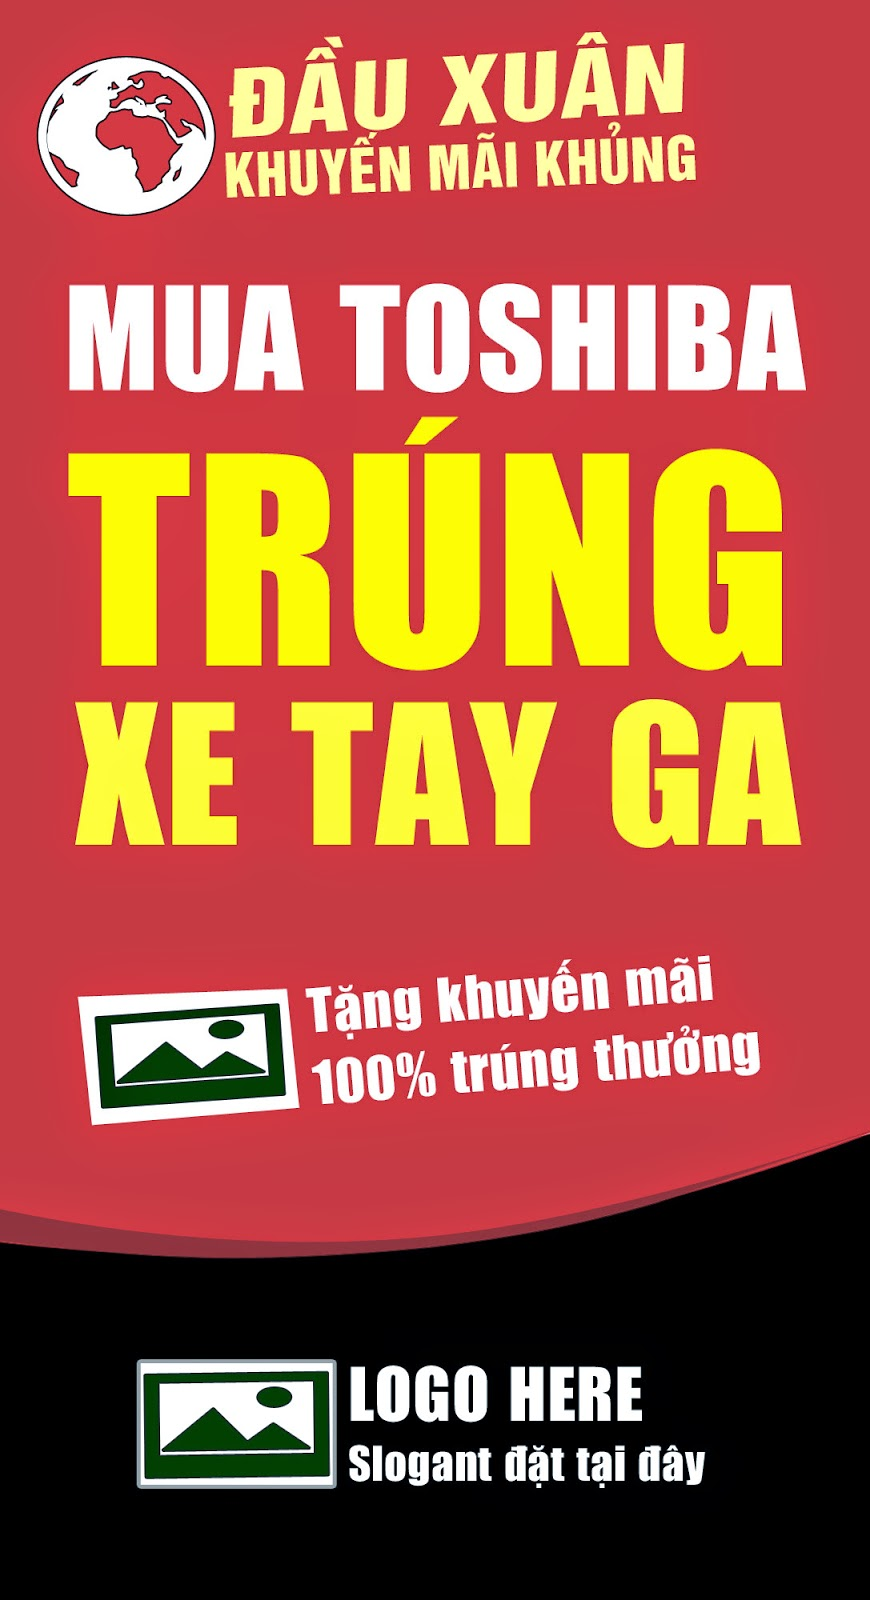 thiet ke banner - dich vu thiet ke banner - thiet ke banner gia re - huong dan thiet ke banner - banner quang cao - hinh anh quang cao - banner quang cao psd - banner quang cao cho web